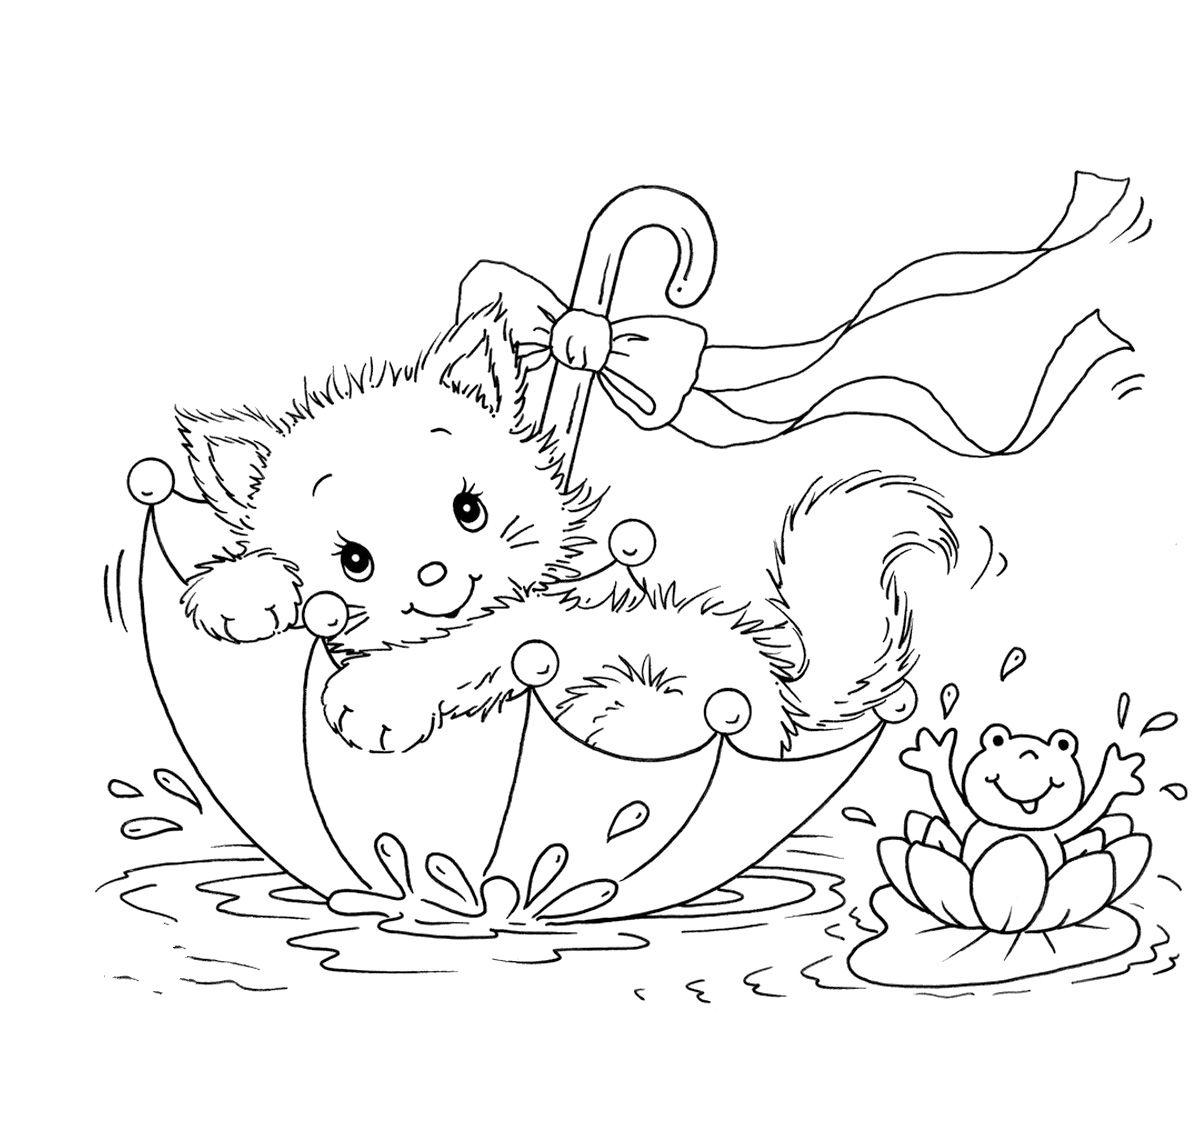 Kitty Cat And Frog In Umbrella Coloring Pages Spring Coloring